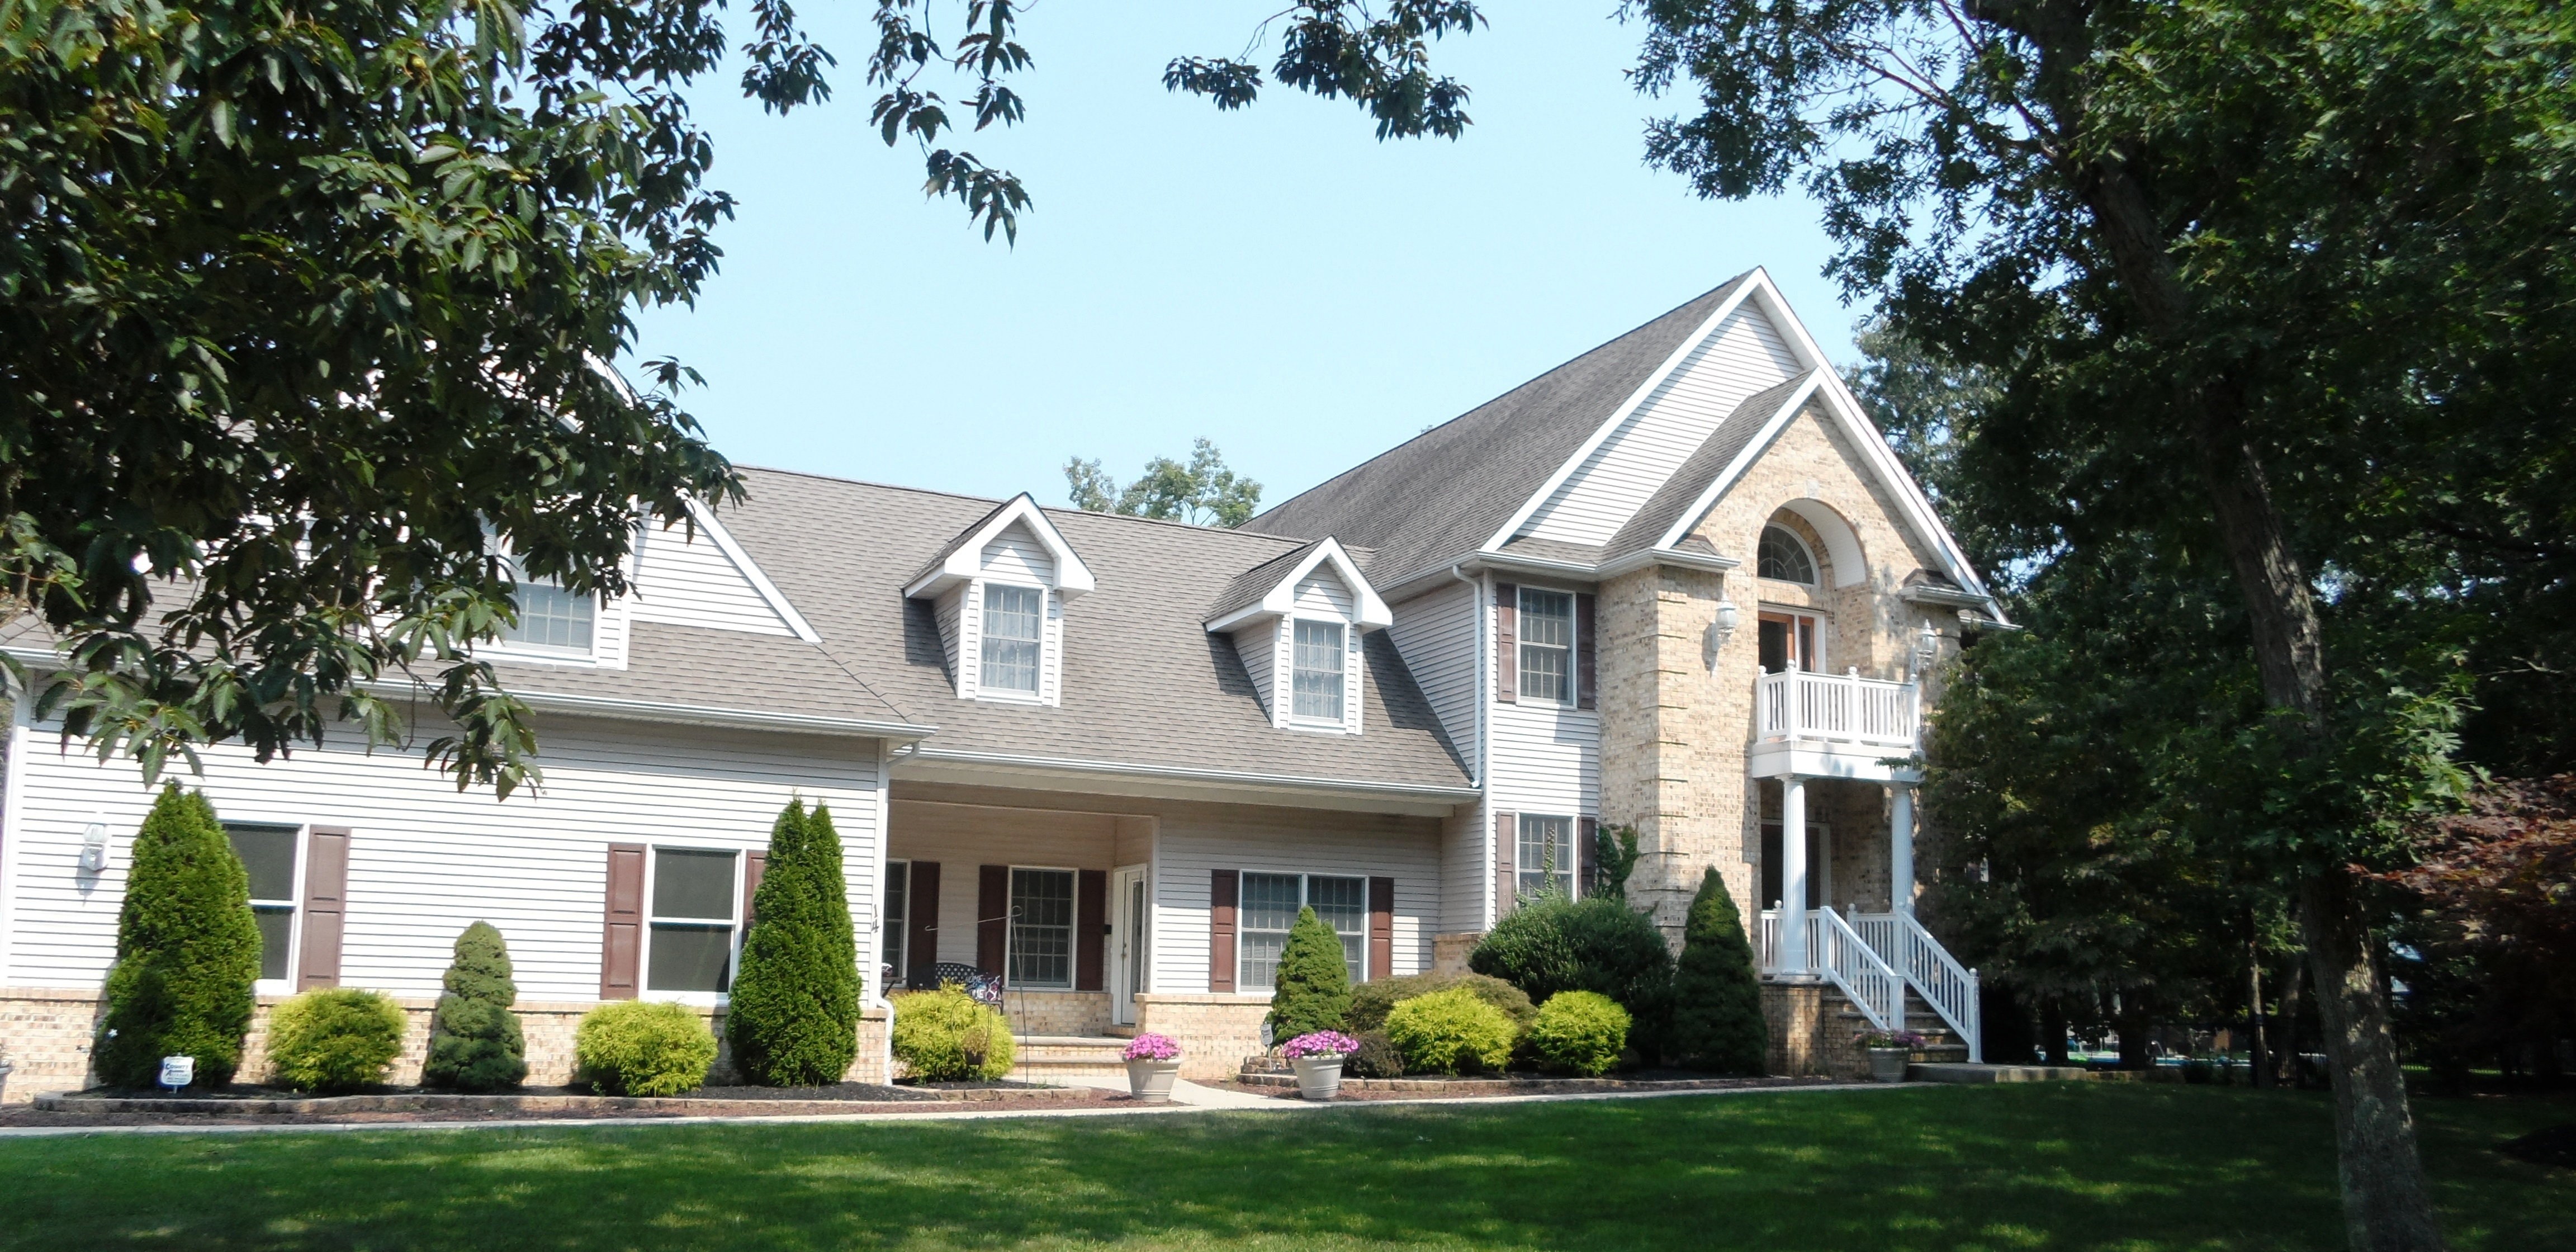 Nj residential construction renovation a trubuilders inc for Building a house in nj